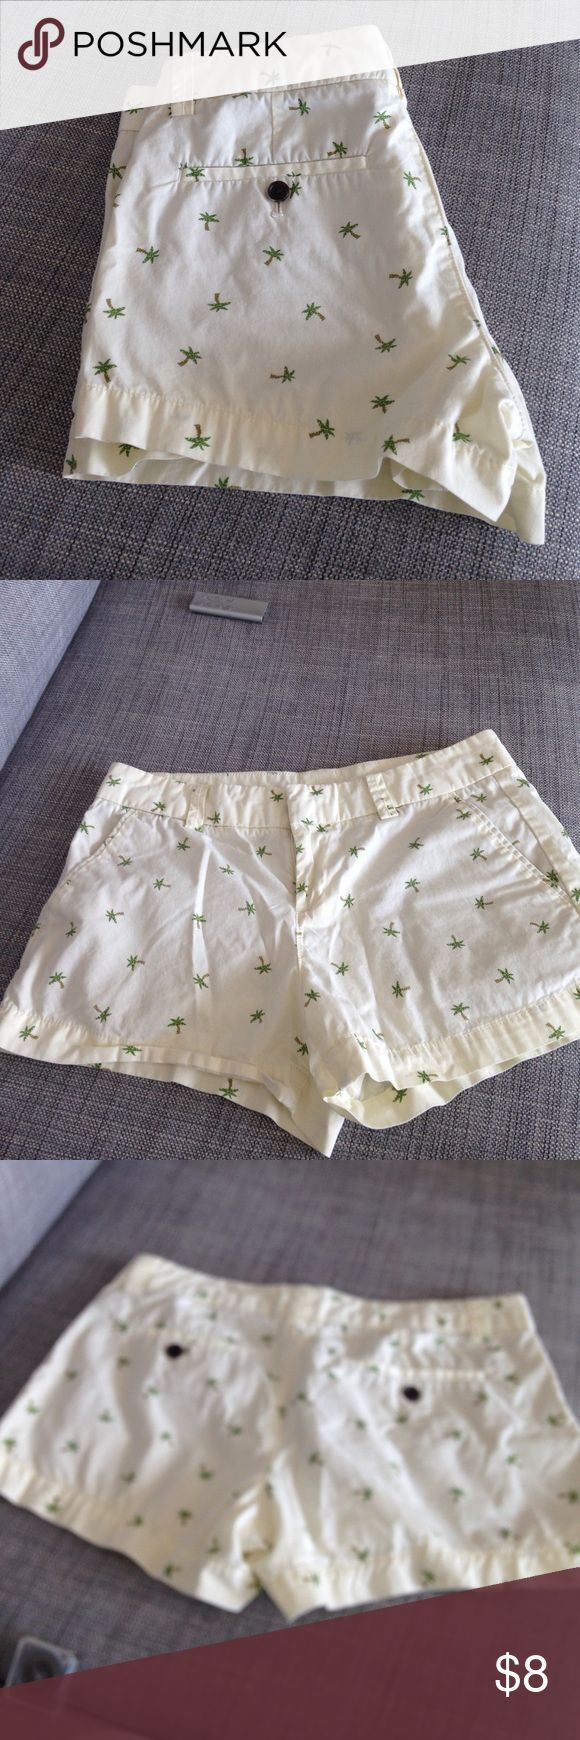 Cute print shorts. Cotton. Uniqlo Short pants. Very cute. Ivory color with green tree print. Uniqlo Shorts